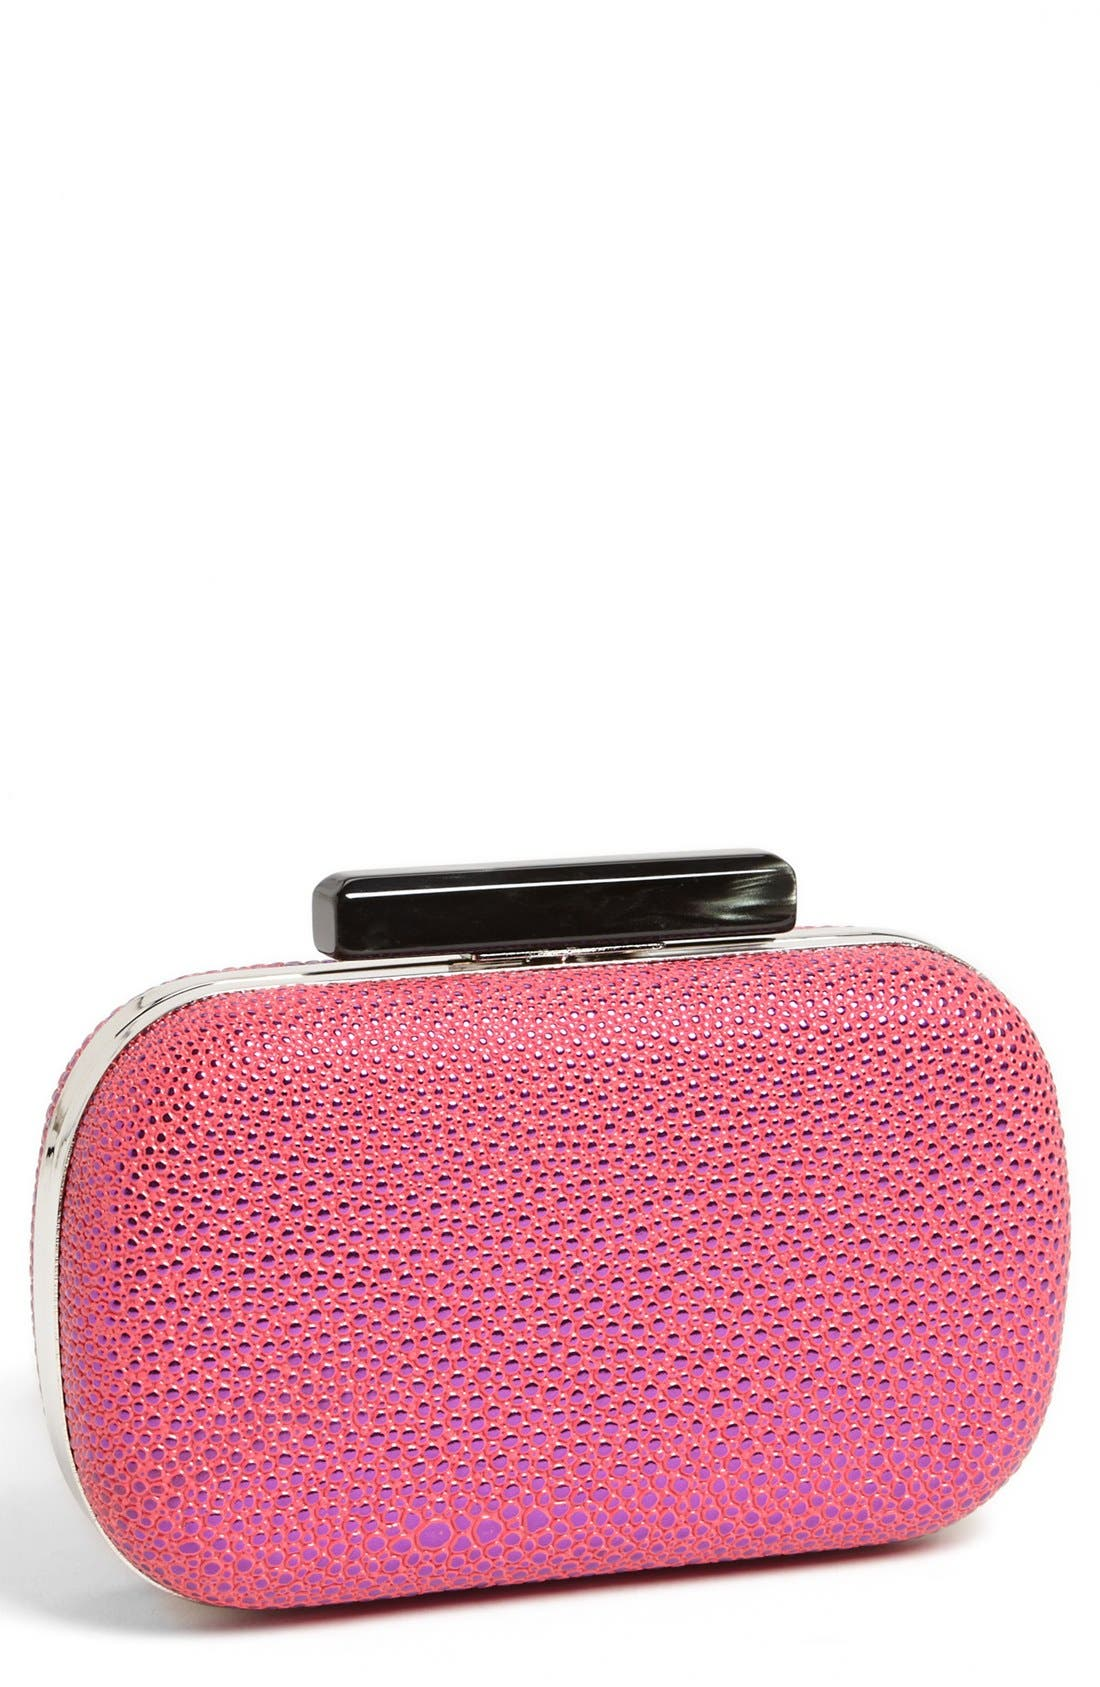 Main Image - Expressions NYC Pebbled Box Clutch